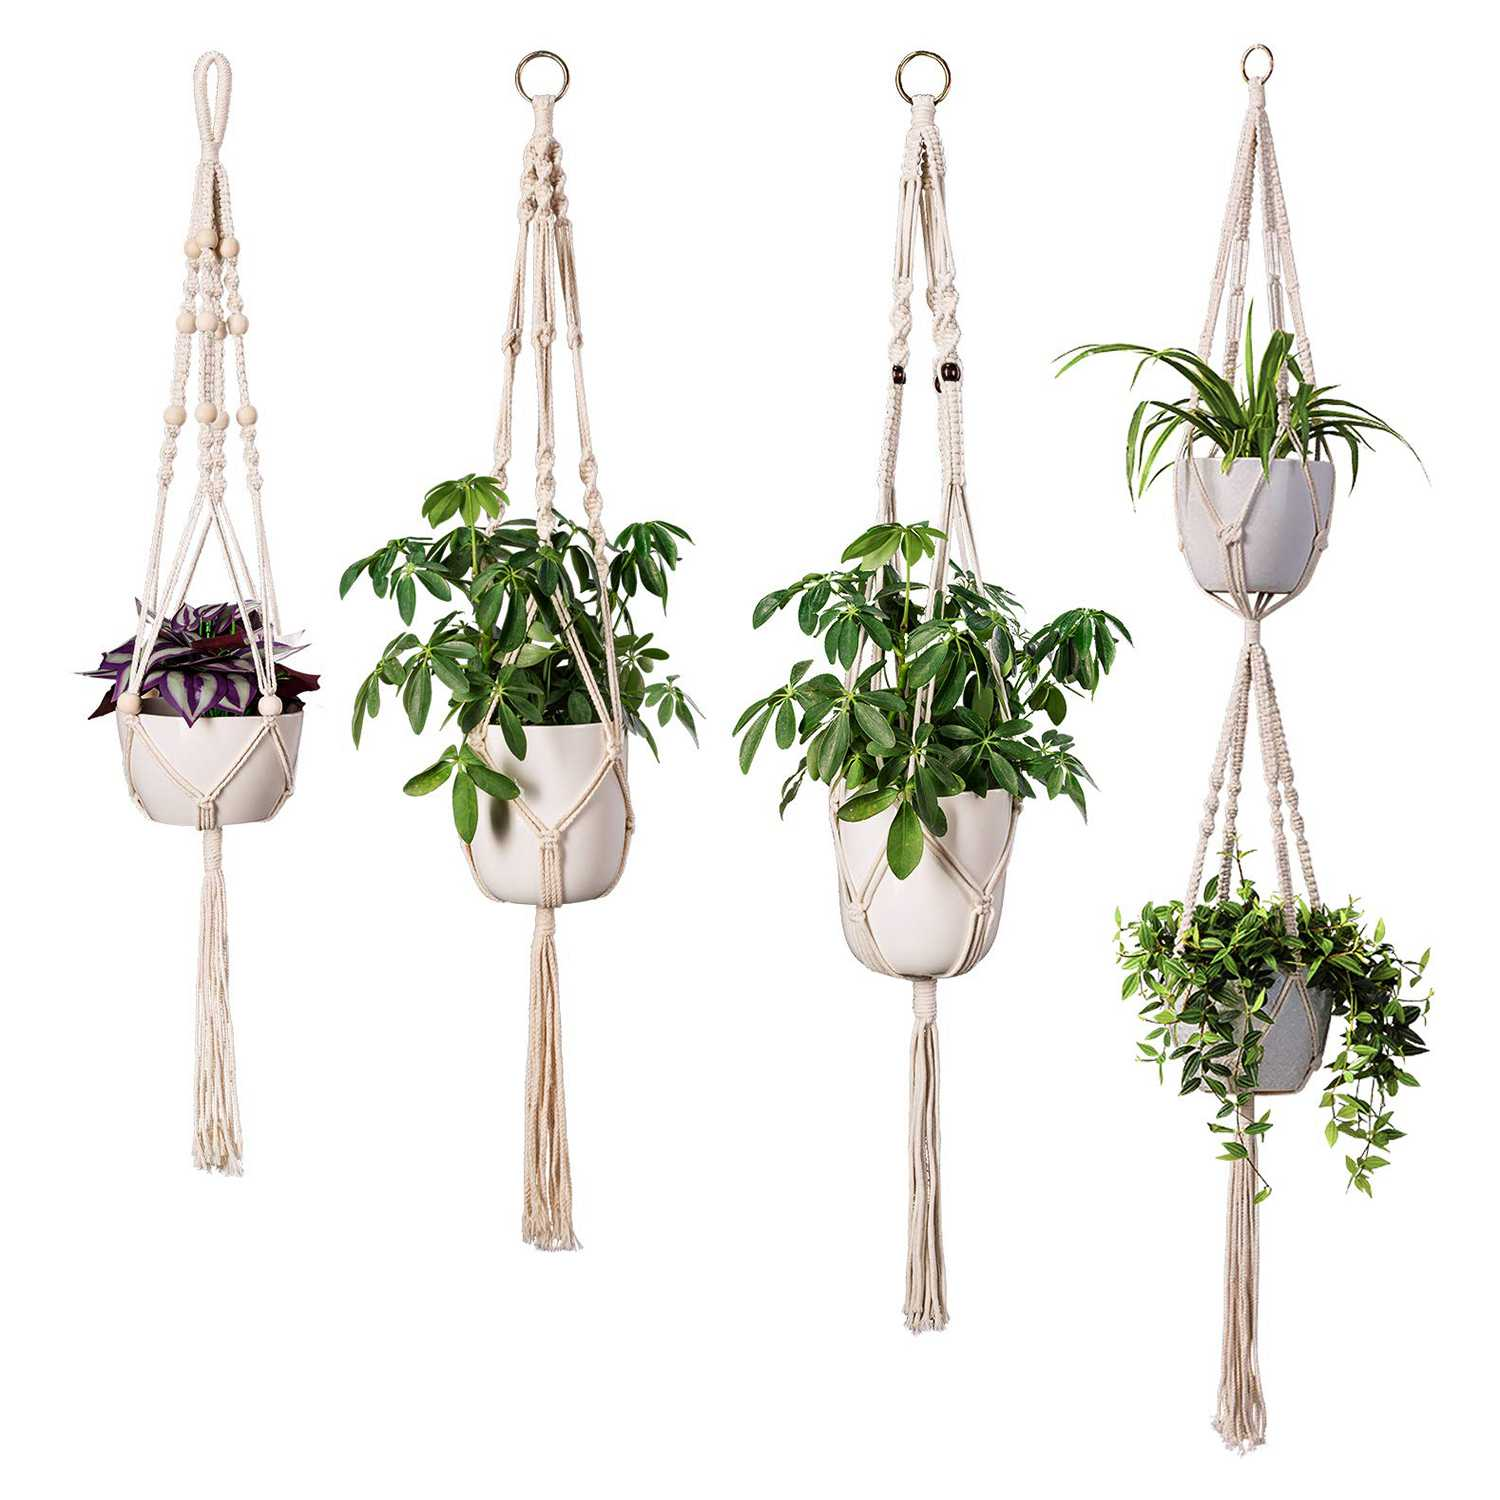 Fence Plant Hangers: 4 Pack Macrame Plant Hangers In Different Designs Handmade